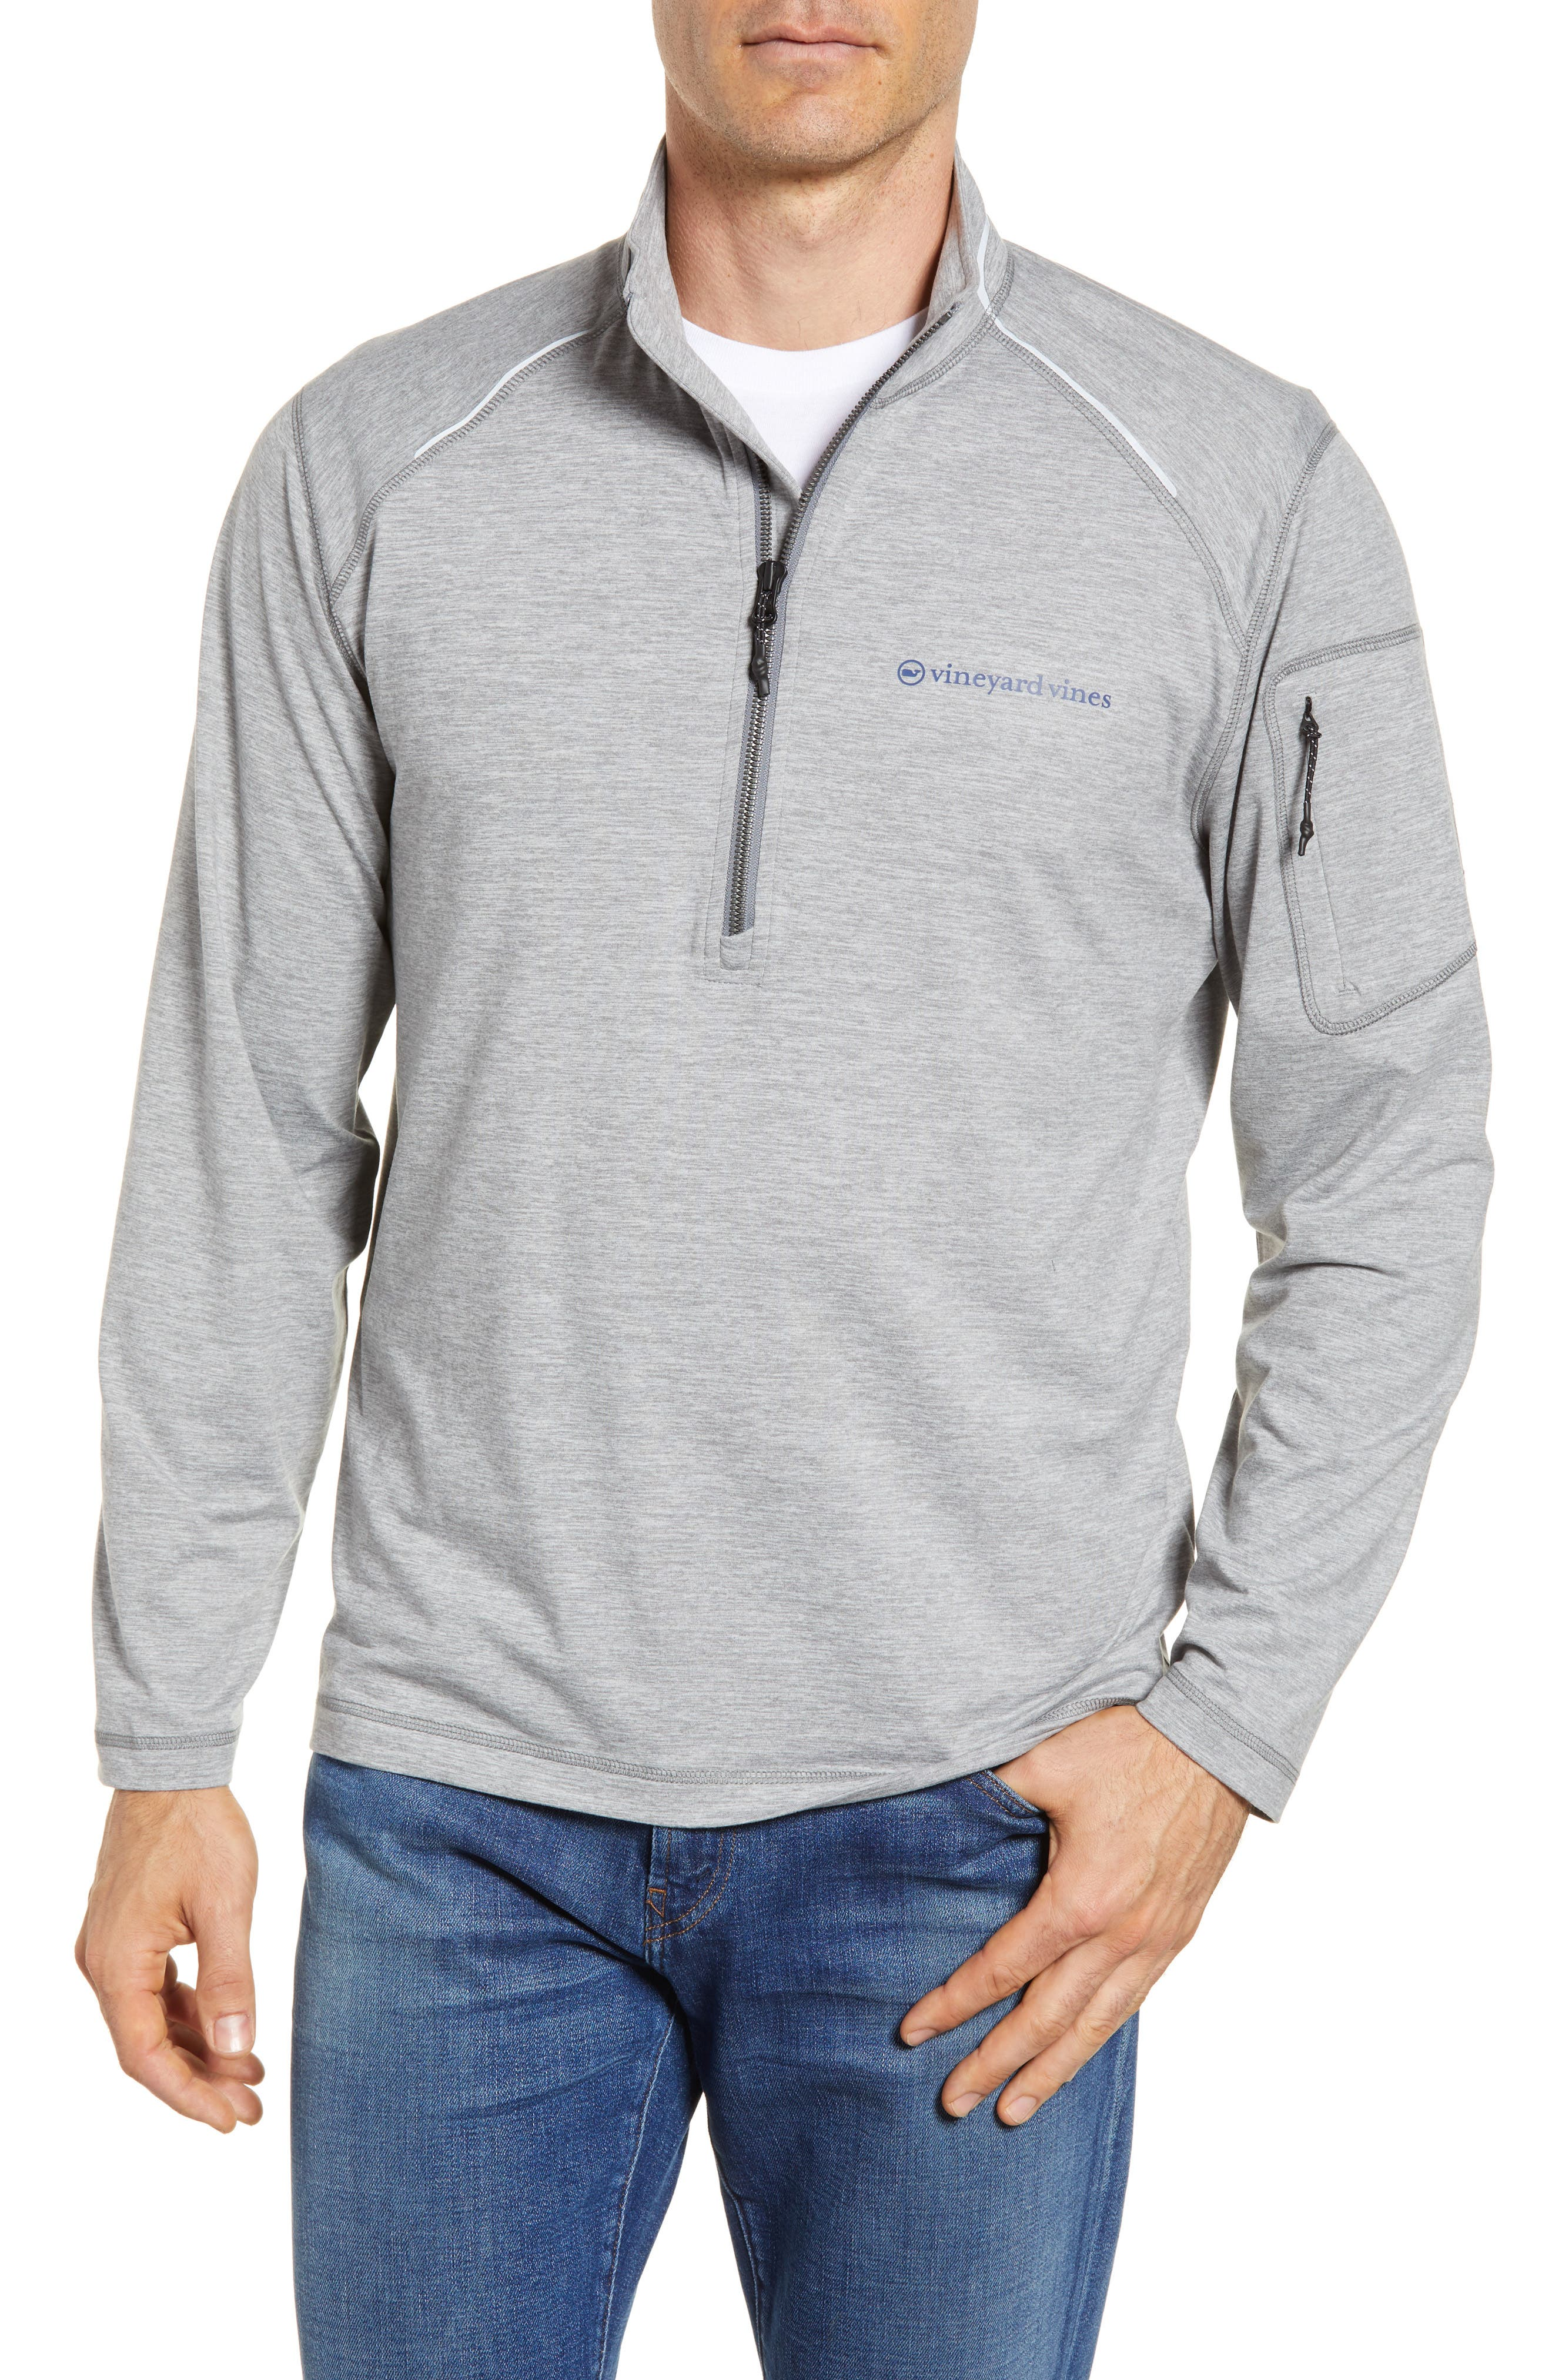 vineyard vines Performance Half Zip Pullover